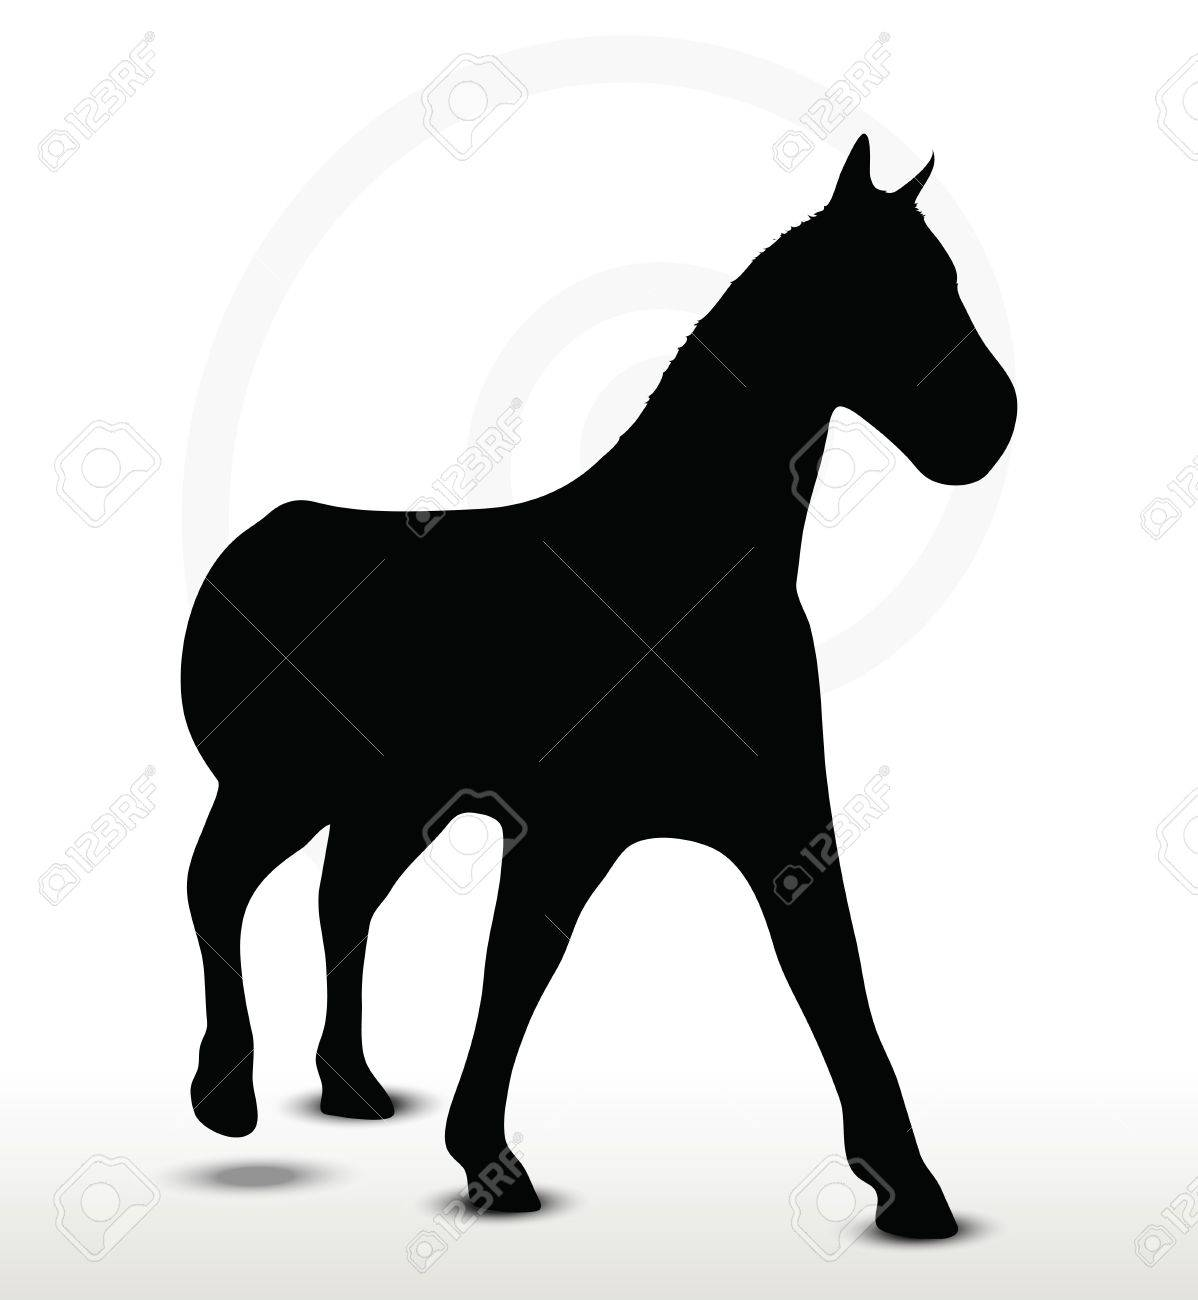 Horse Silhouette In Walking Position Royalty Free Cliparts Vectors And Stock Illustration Image 29208483